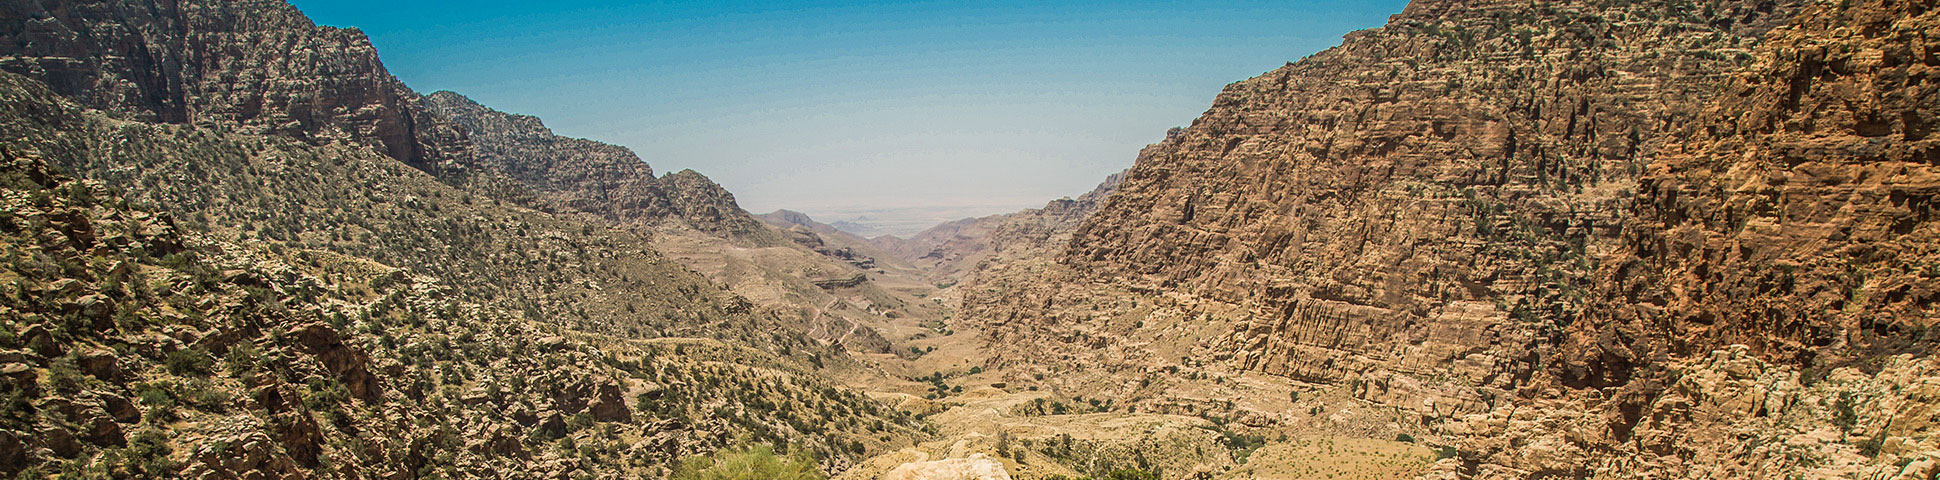 Panoramic view from expansive valley on guided trek from Dana to Petra in Jordan